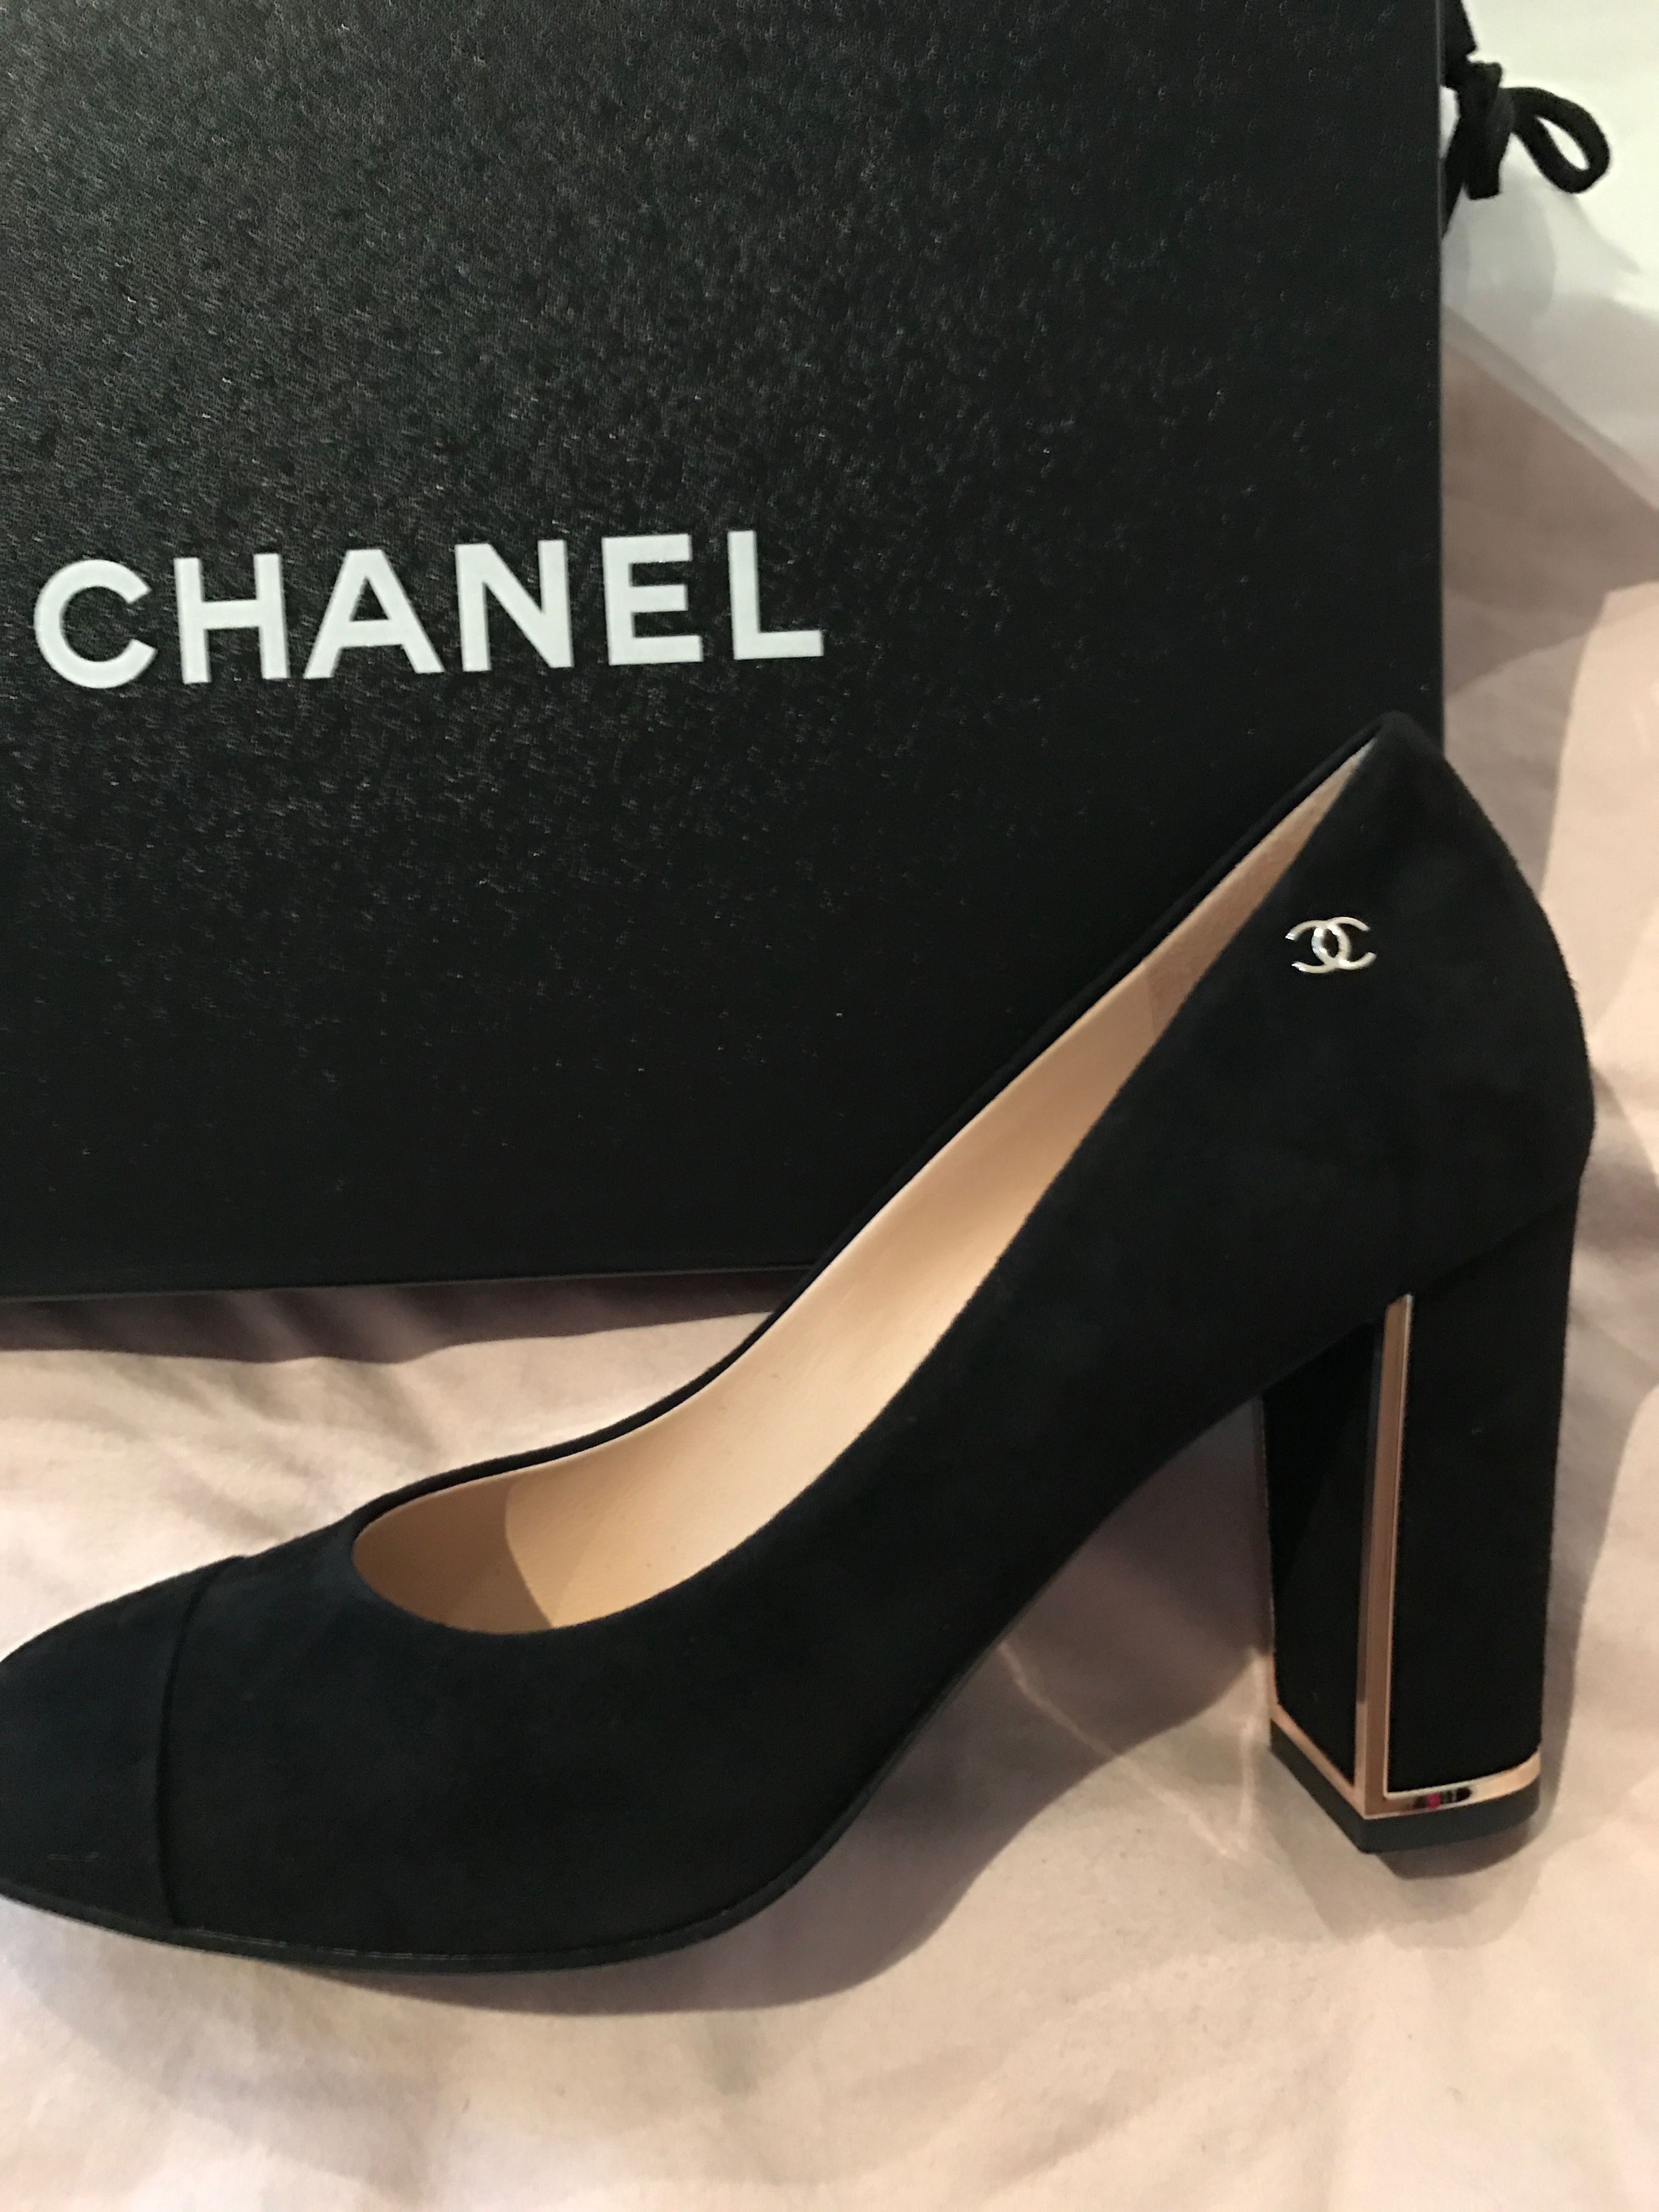 579f4c58df6 Chanel 2016 Black Block Heels Pumps Gold Piping